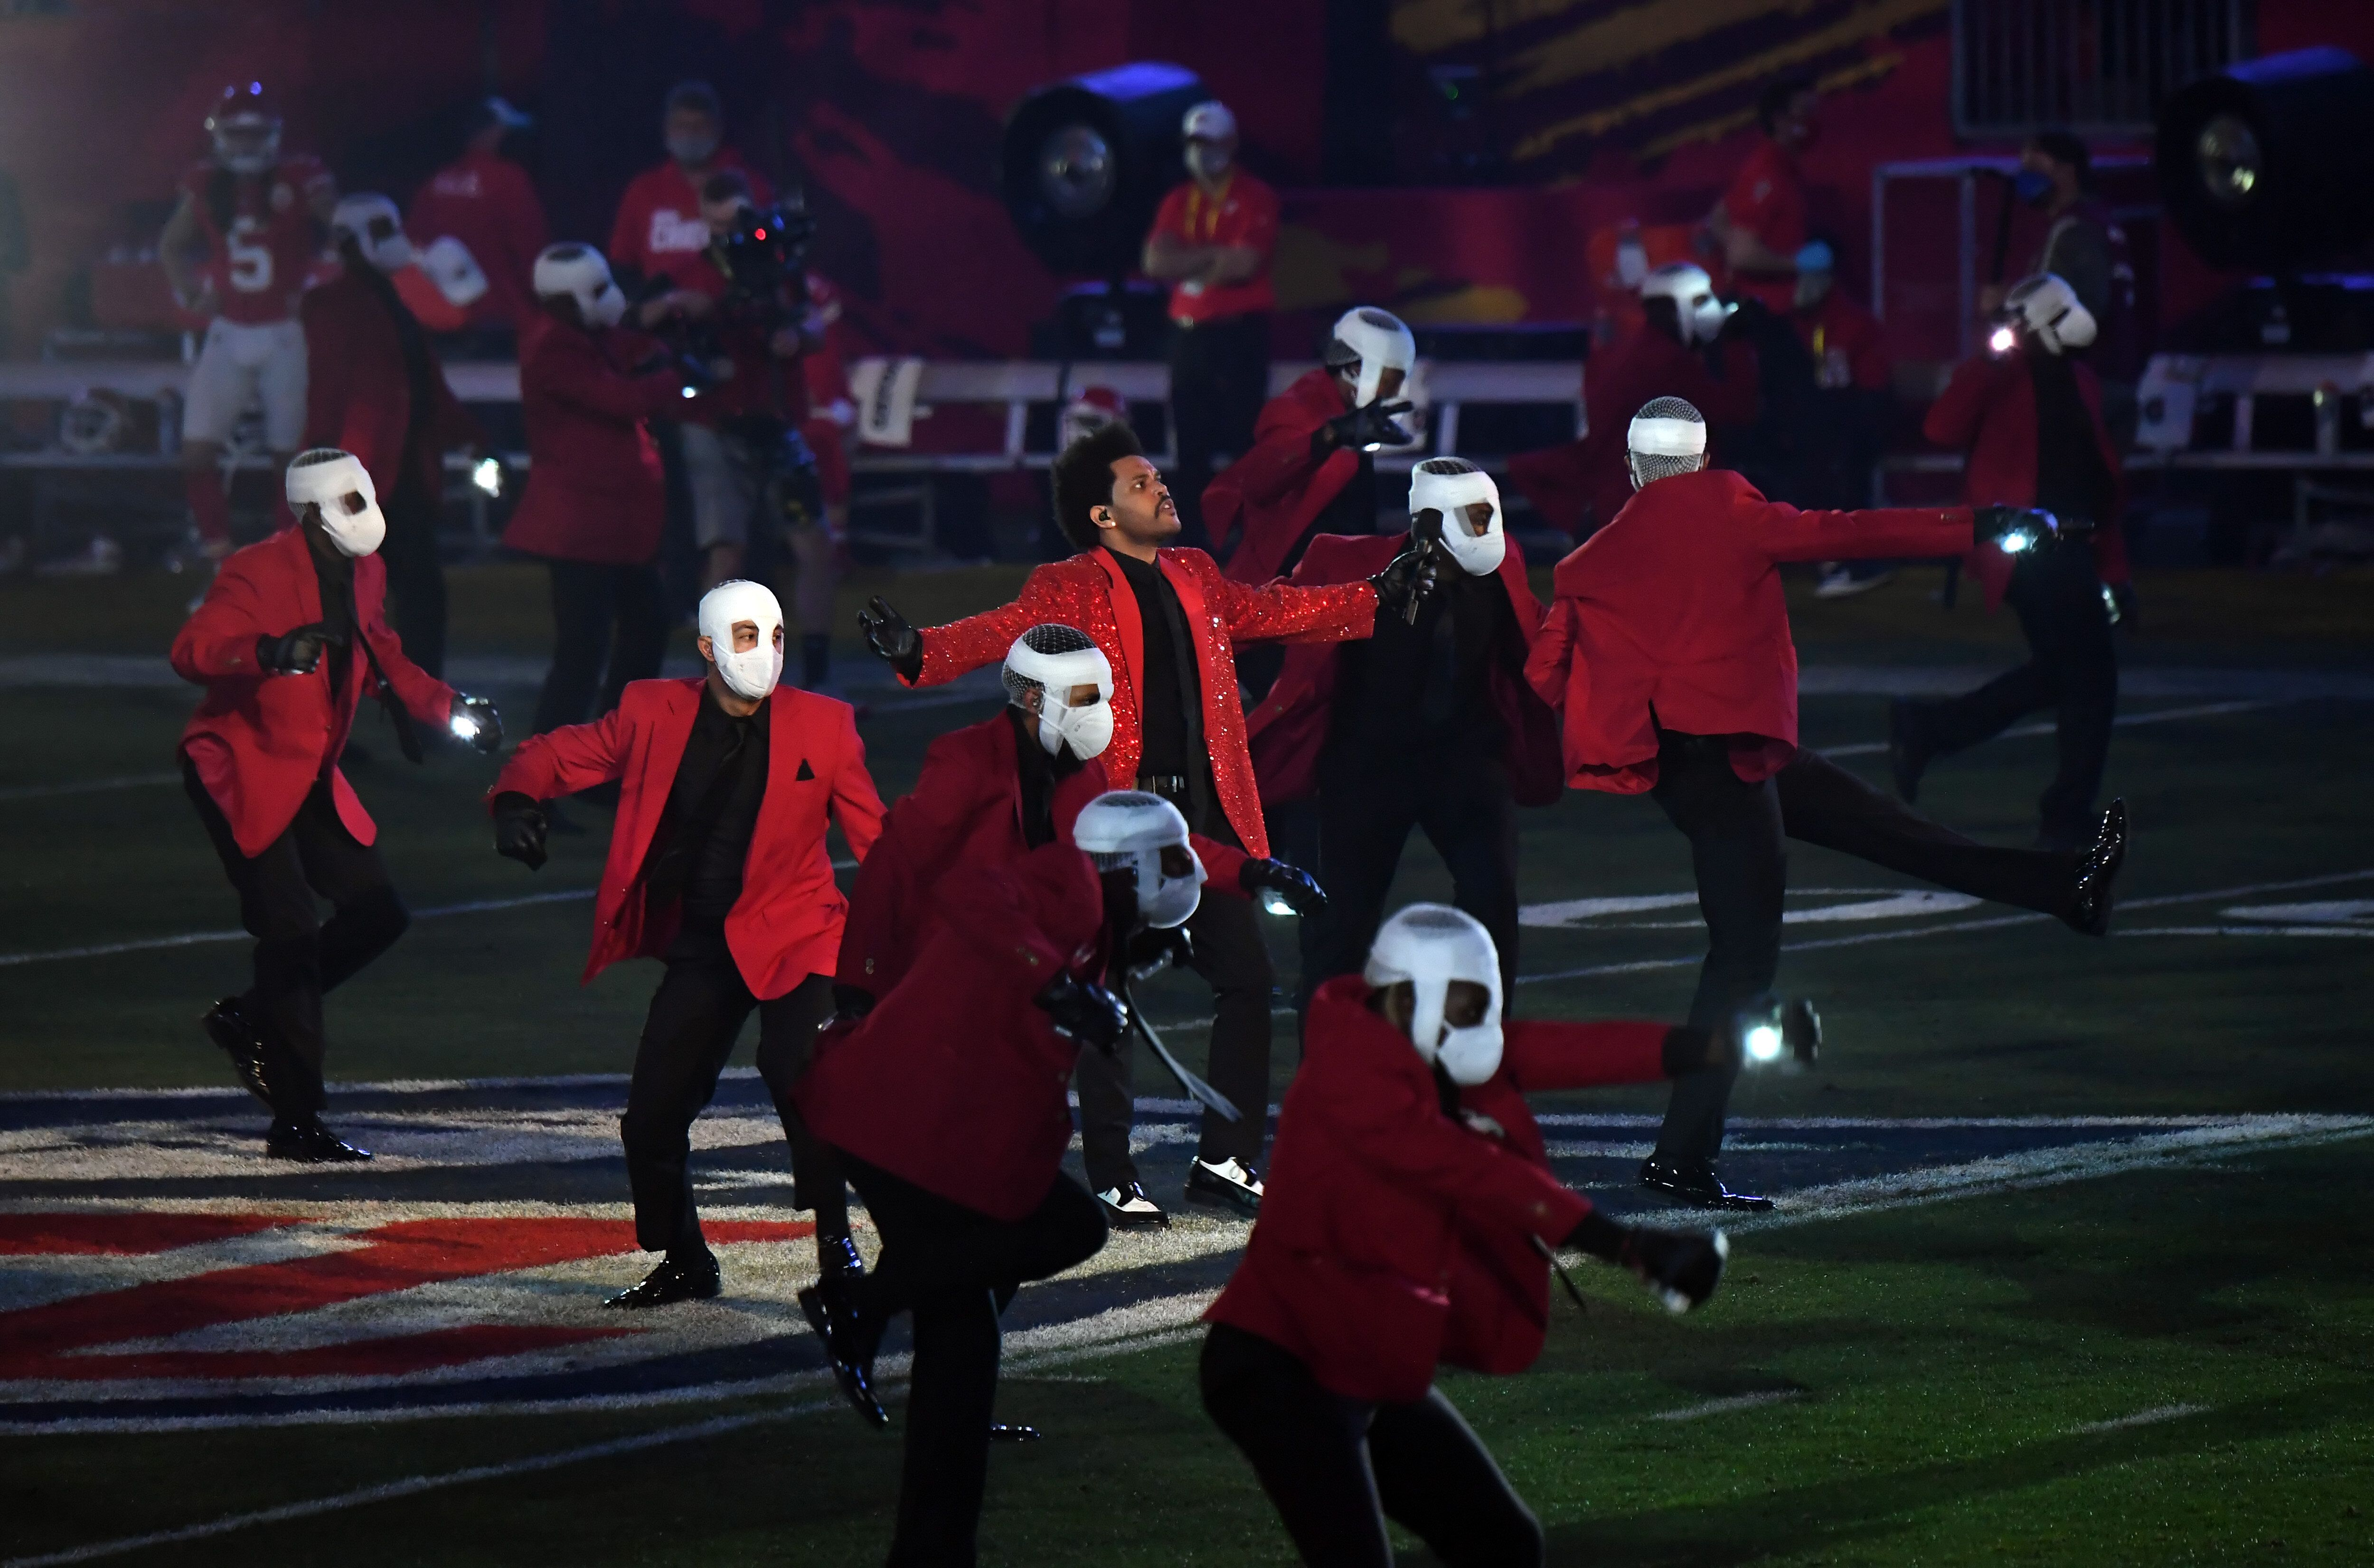 The Weeknd performs among dancers during the 2021 Super Bowl halftime show in Tampa, Florida.